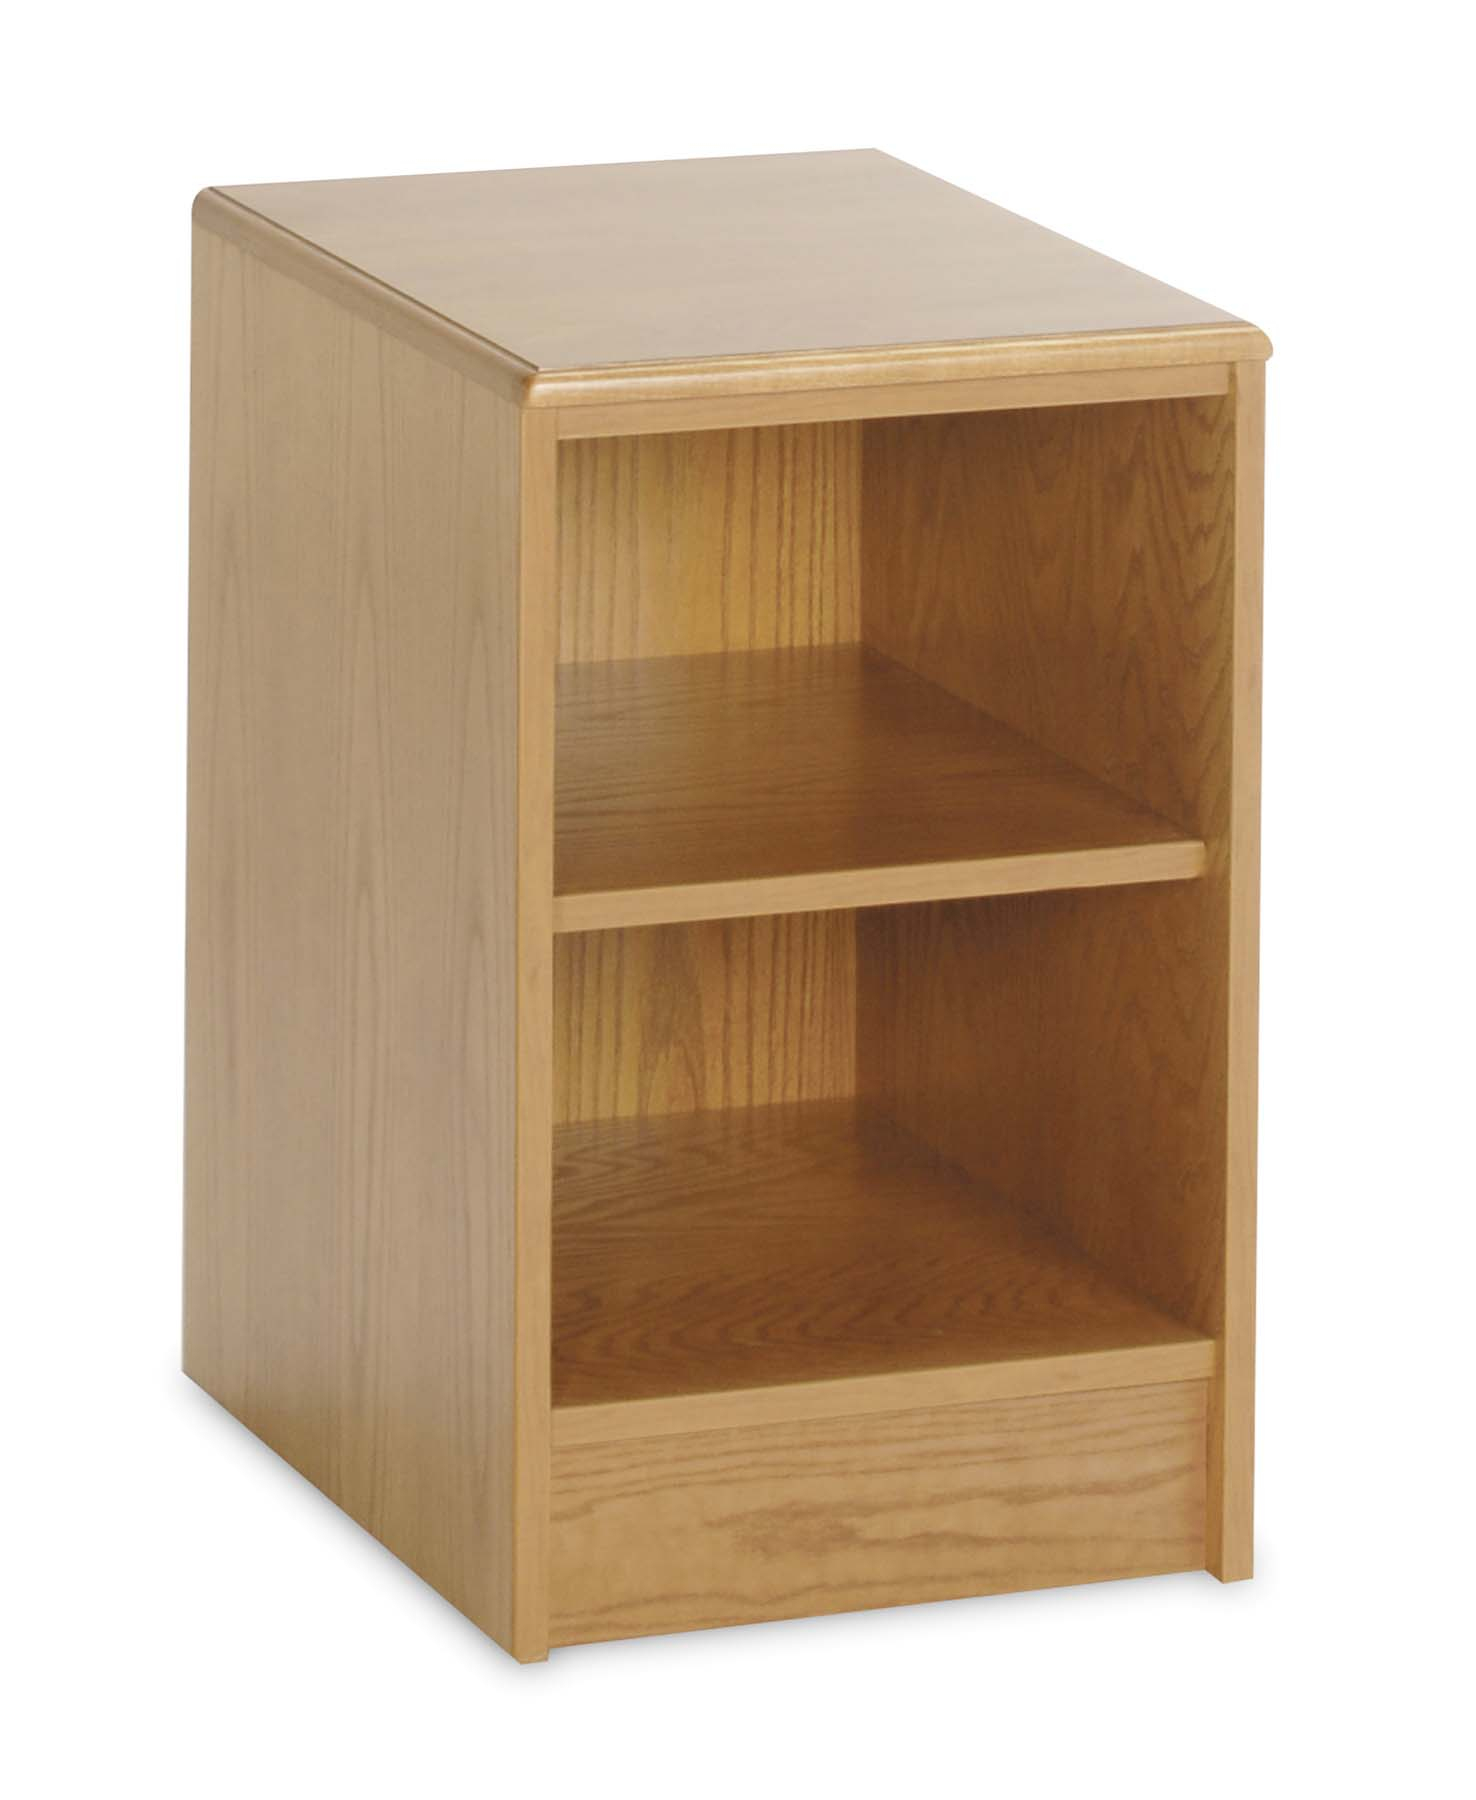 Suicide Resistant Safehouse Nightstand